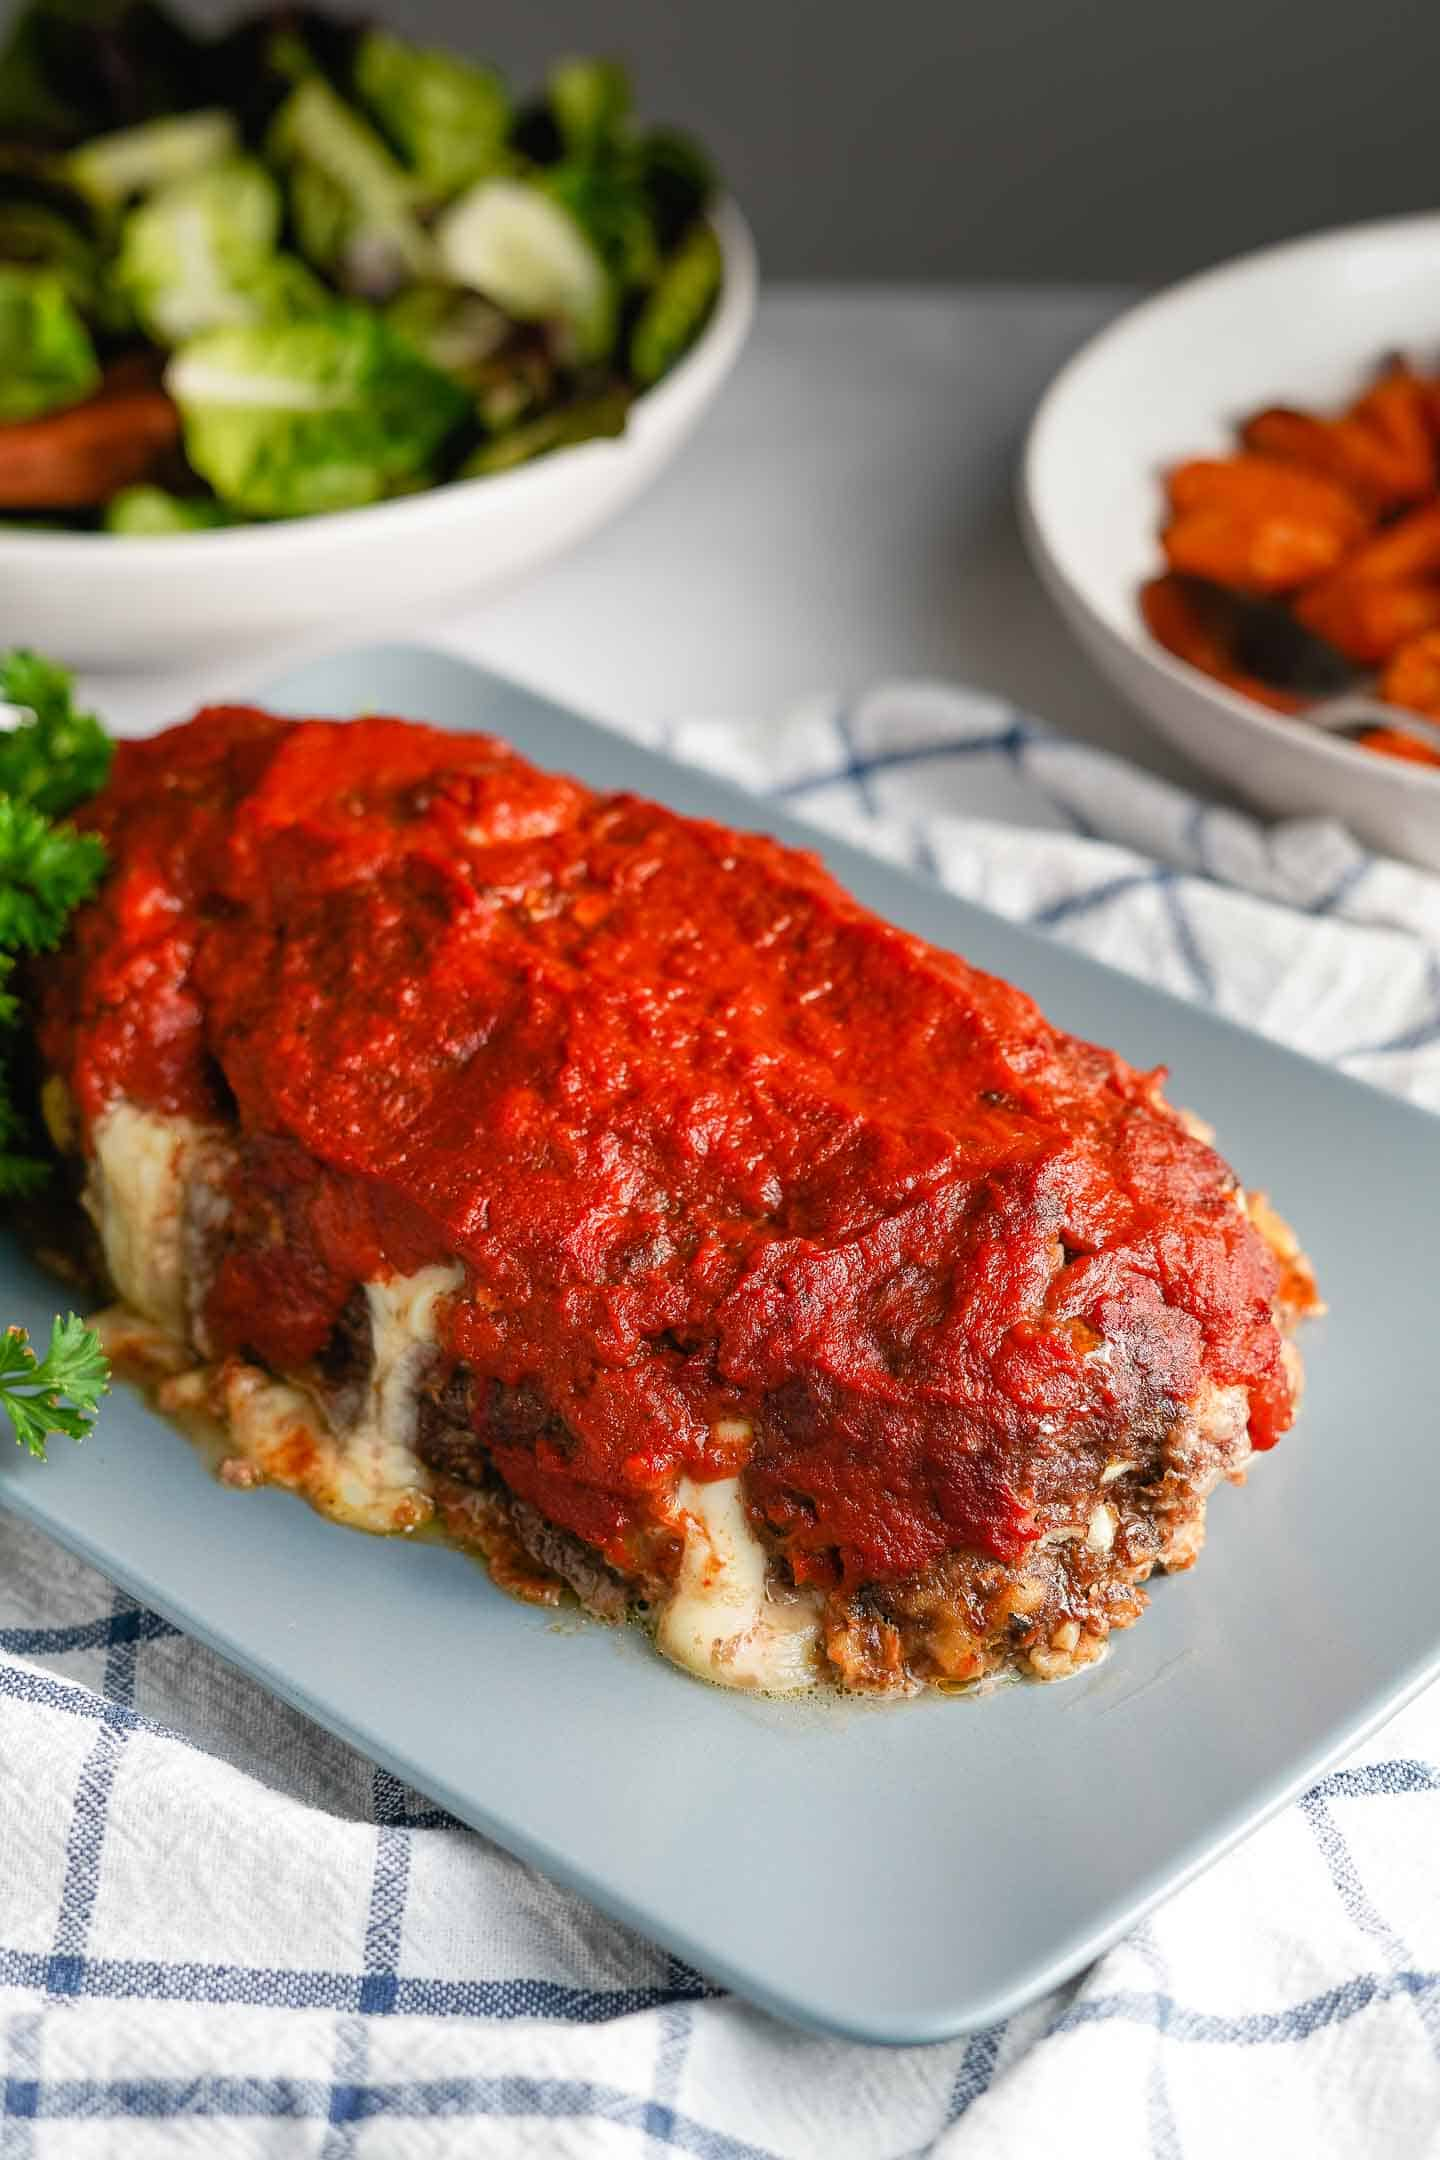 Italian Meatloaf Ready to Serve